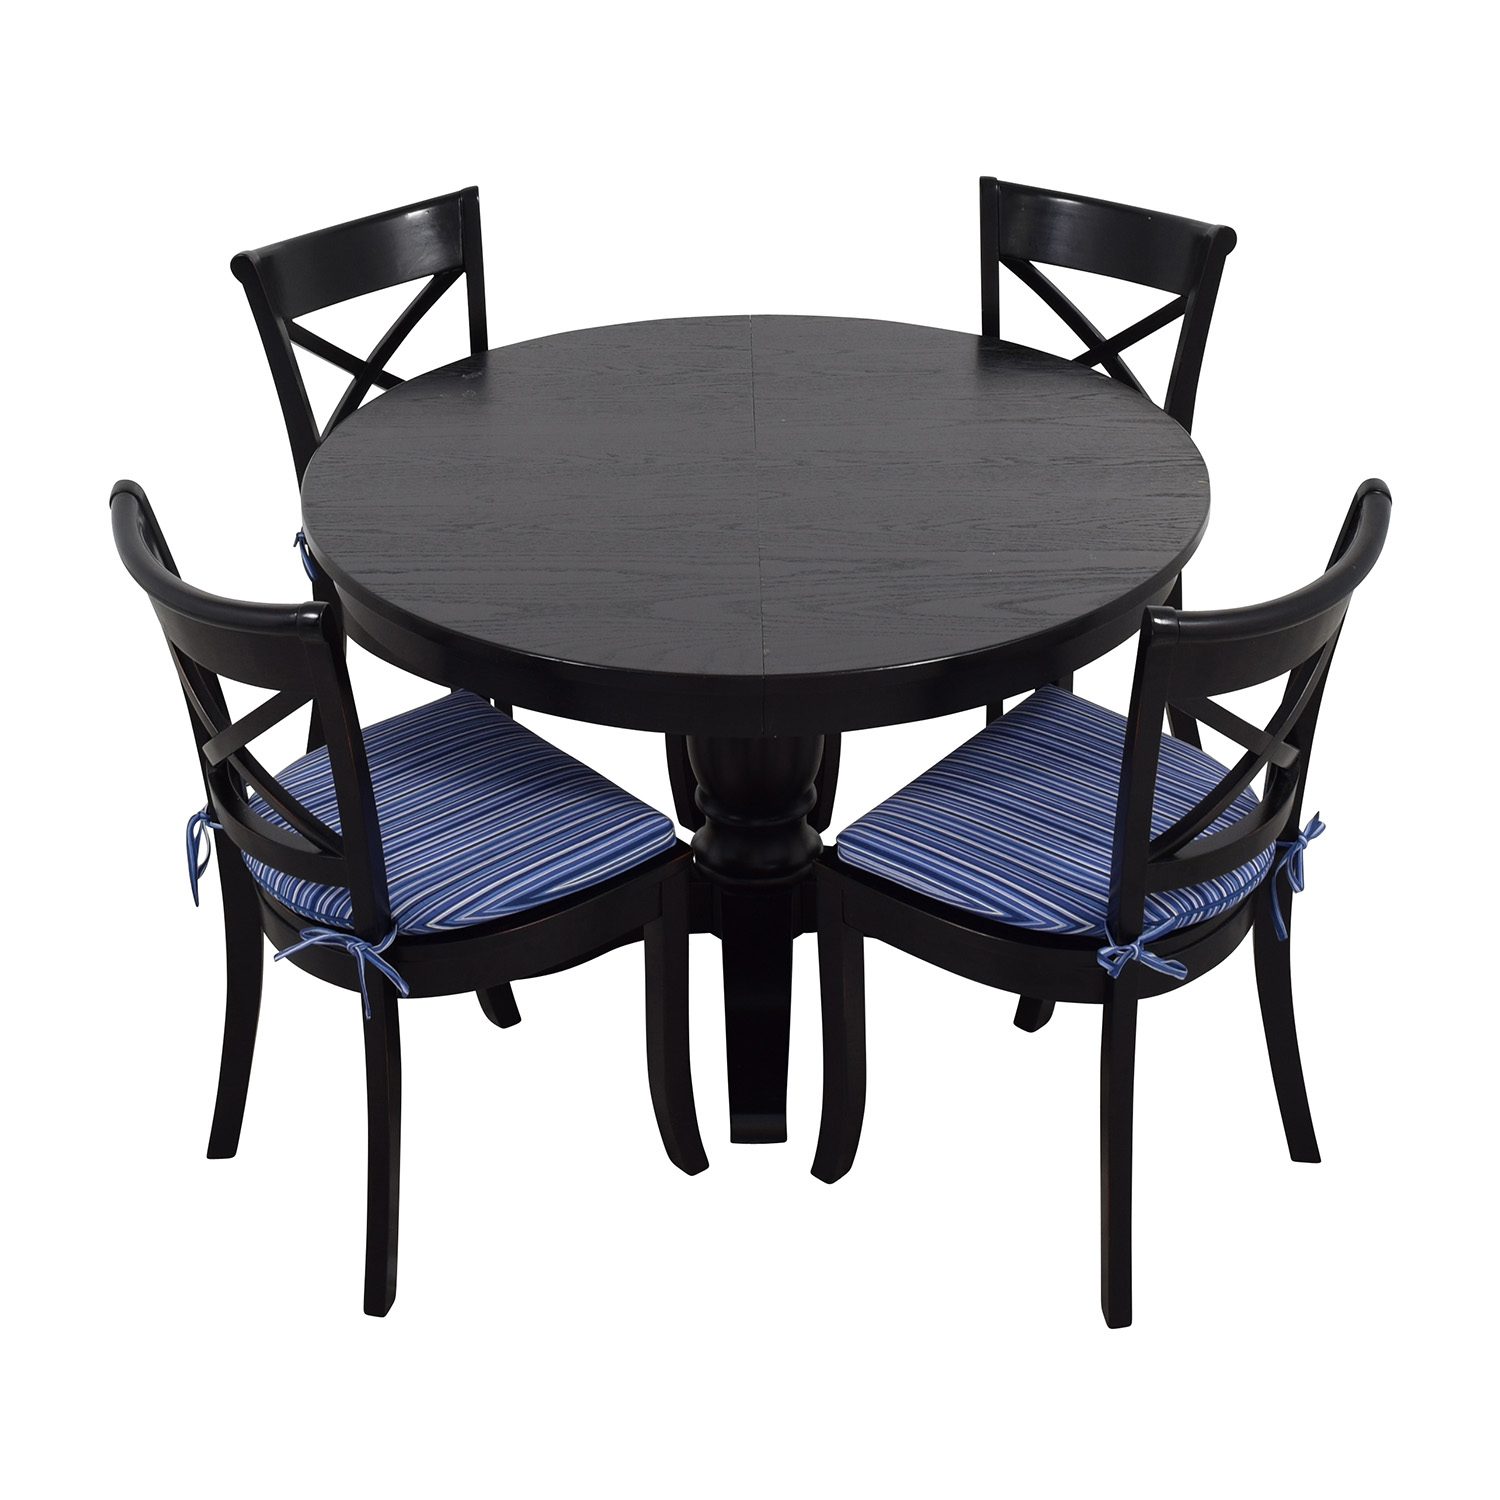 Crate & Barrel Crate & Barrel Table and Chairs Black